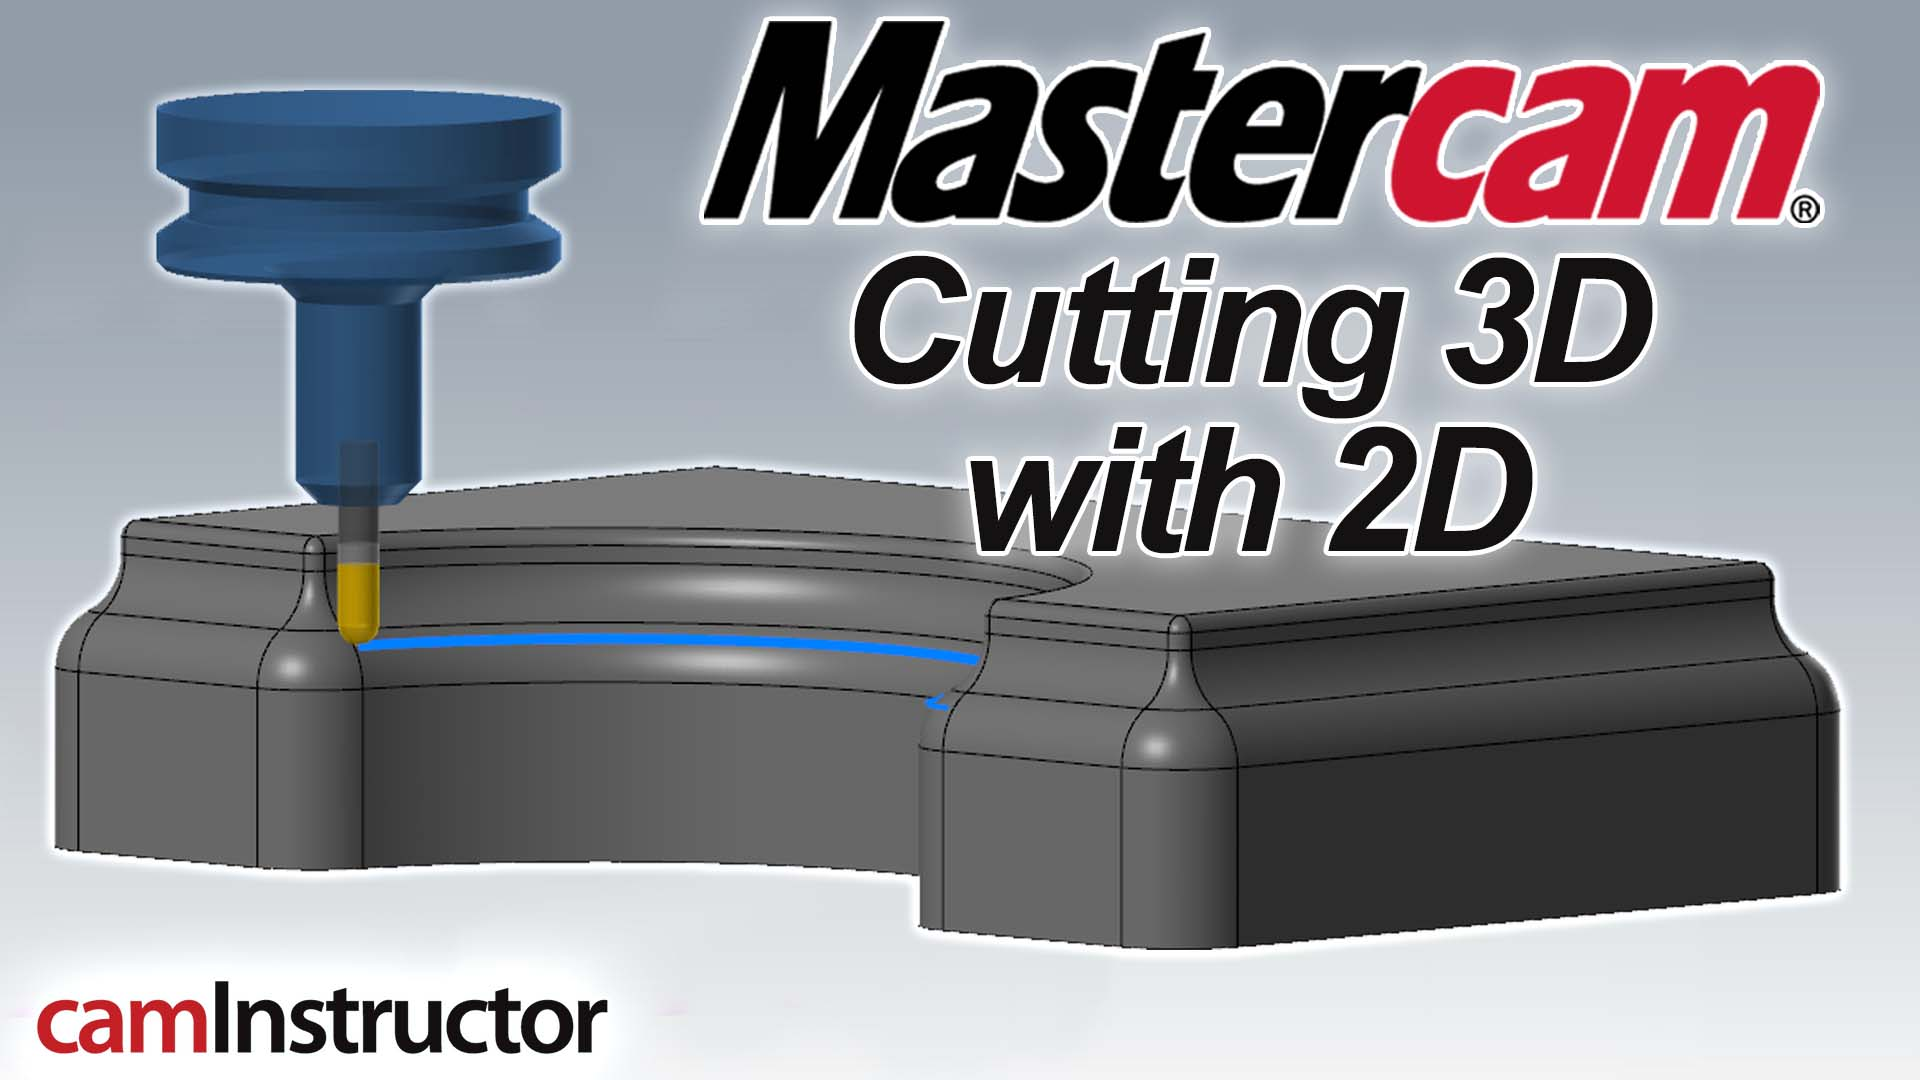 3D Cutting with a 2D Toolpath